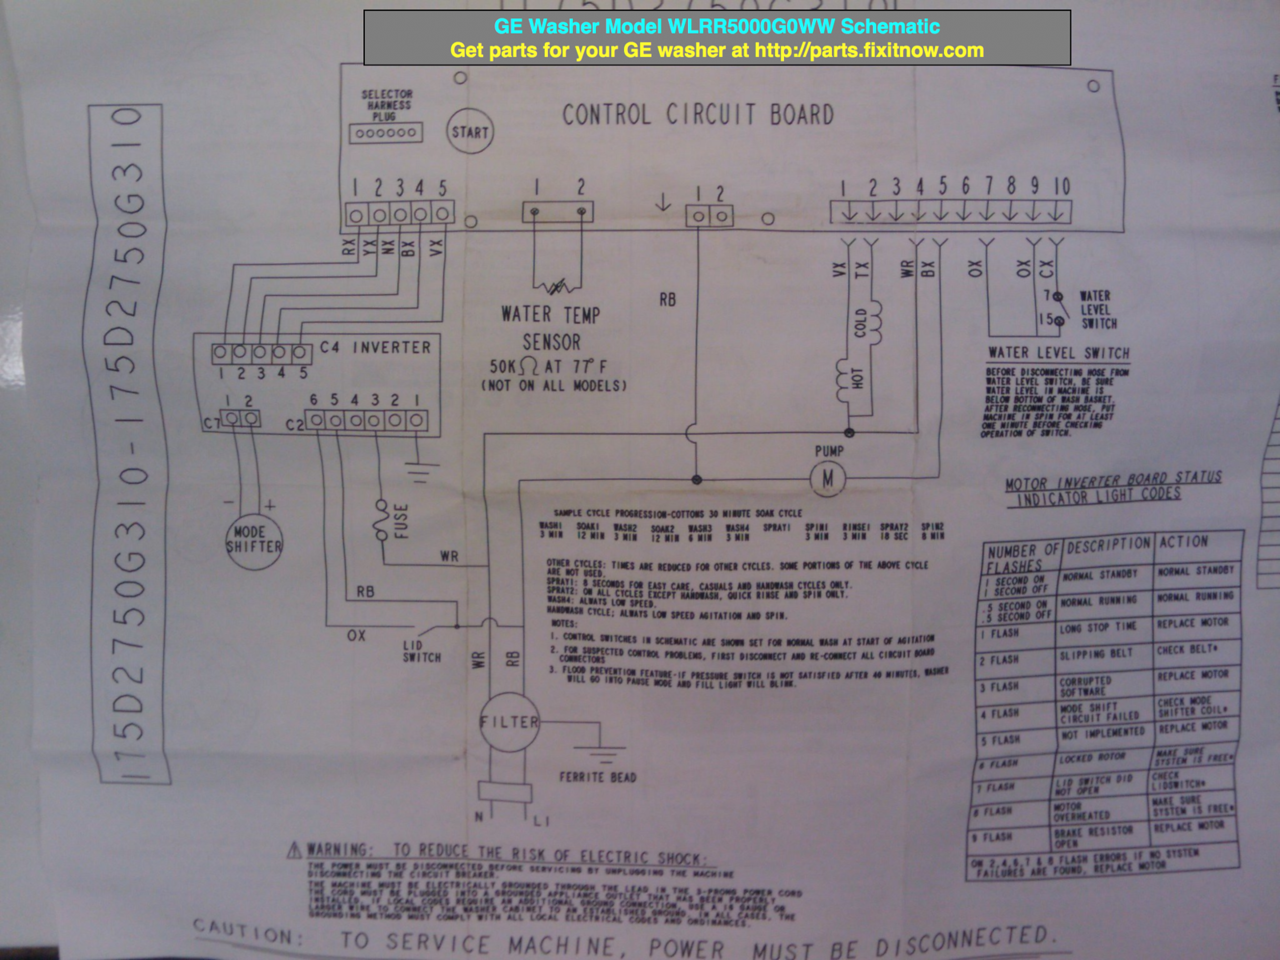 4945390064_47bc6e4583_o X2 wiring diagrams and schematics appliantology ge washer wiring diagram at crackthecode.co